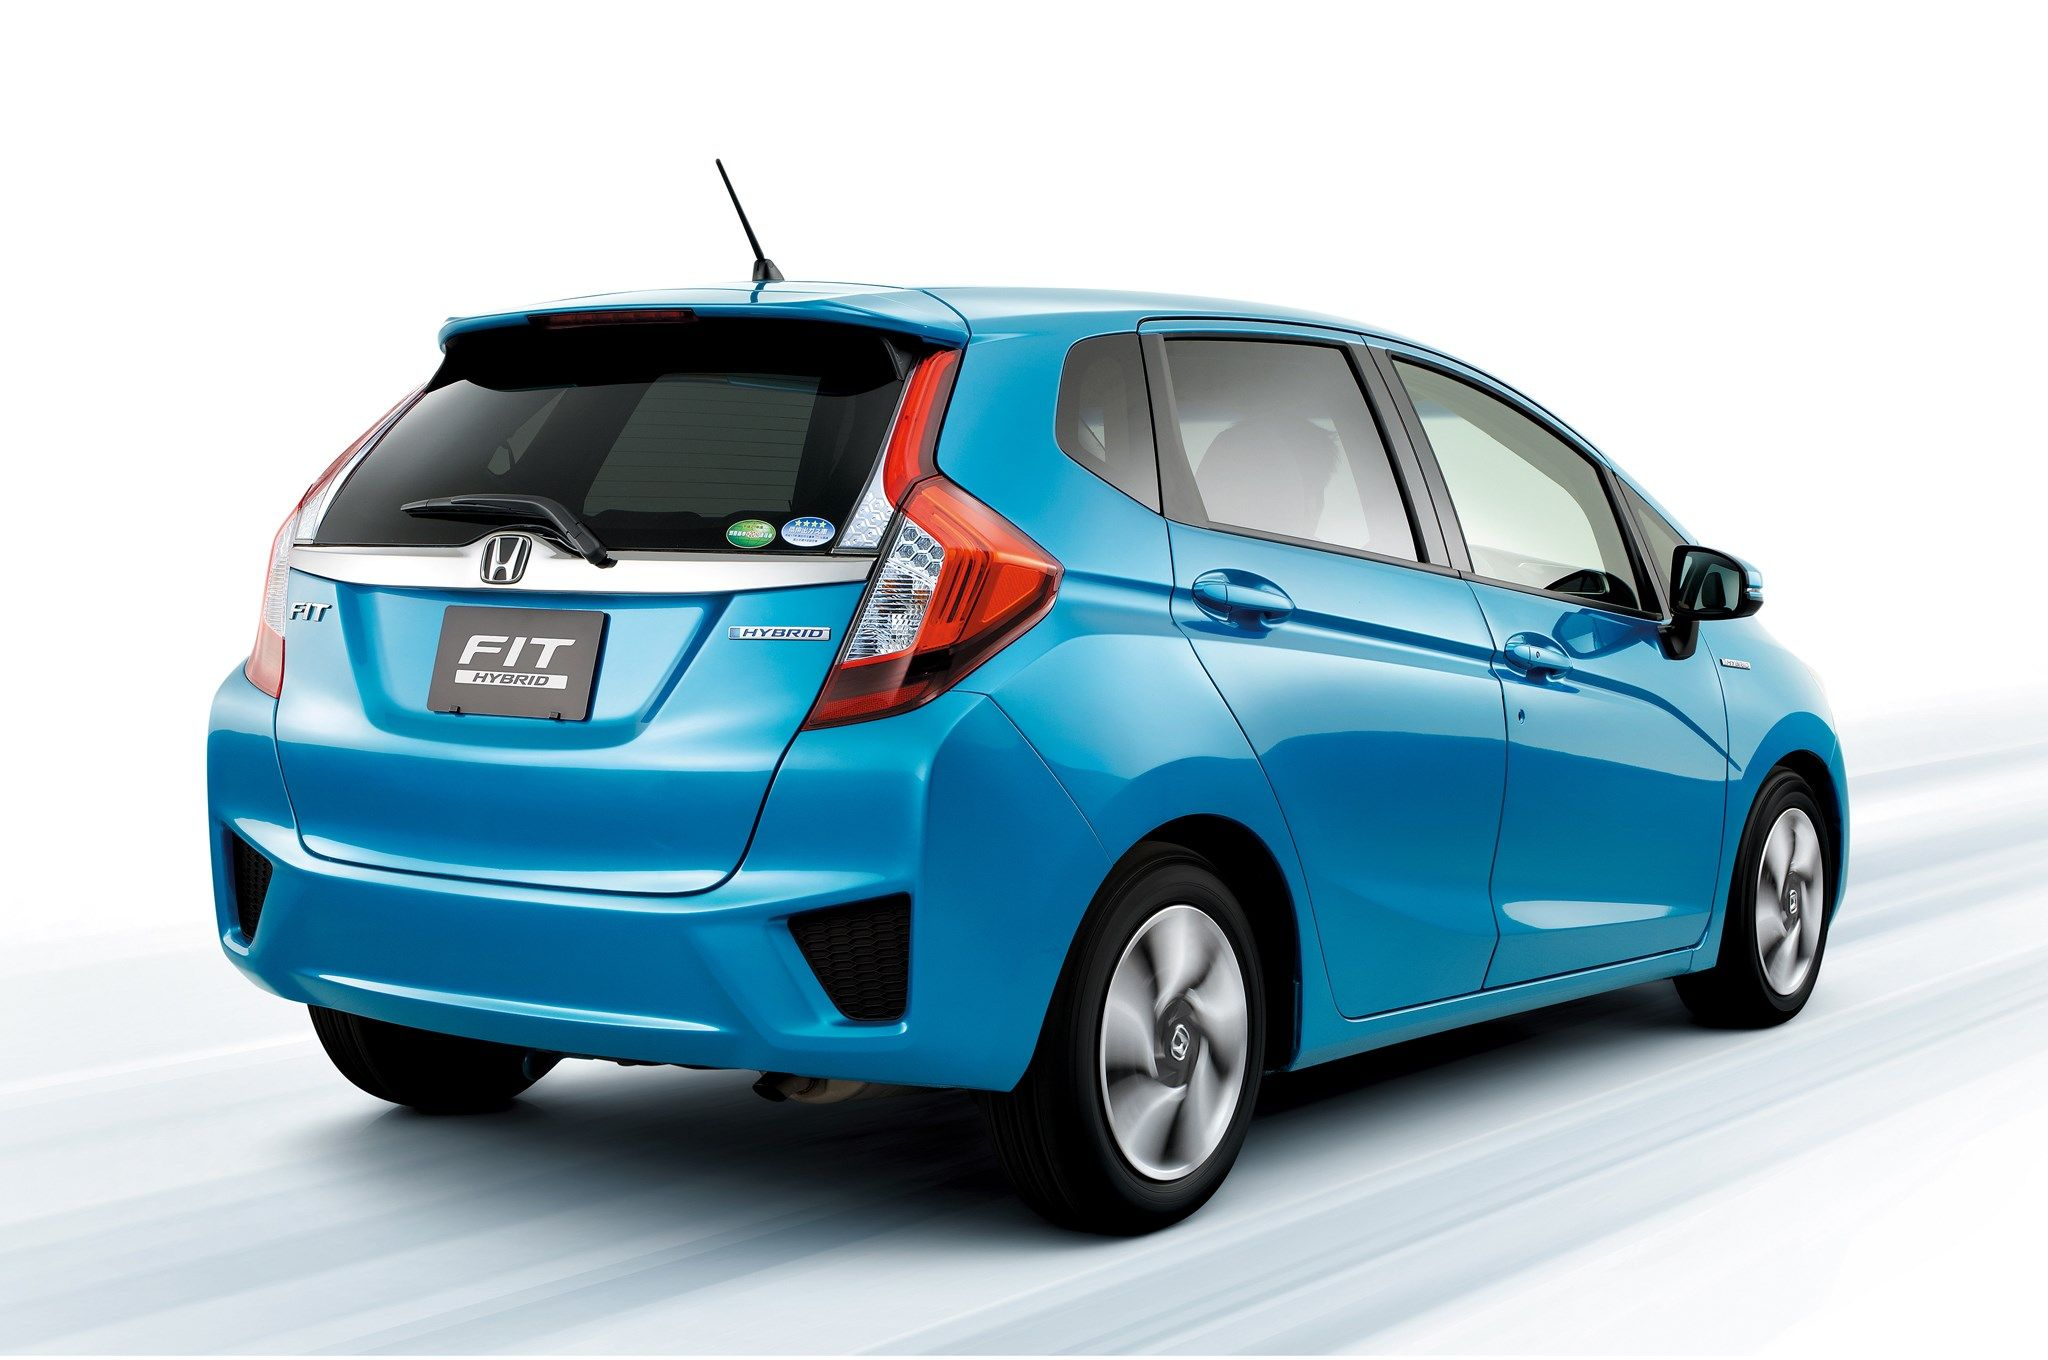 2048x1360 honda pictures desktop 2015 honda fit, Honda